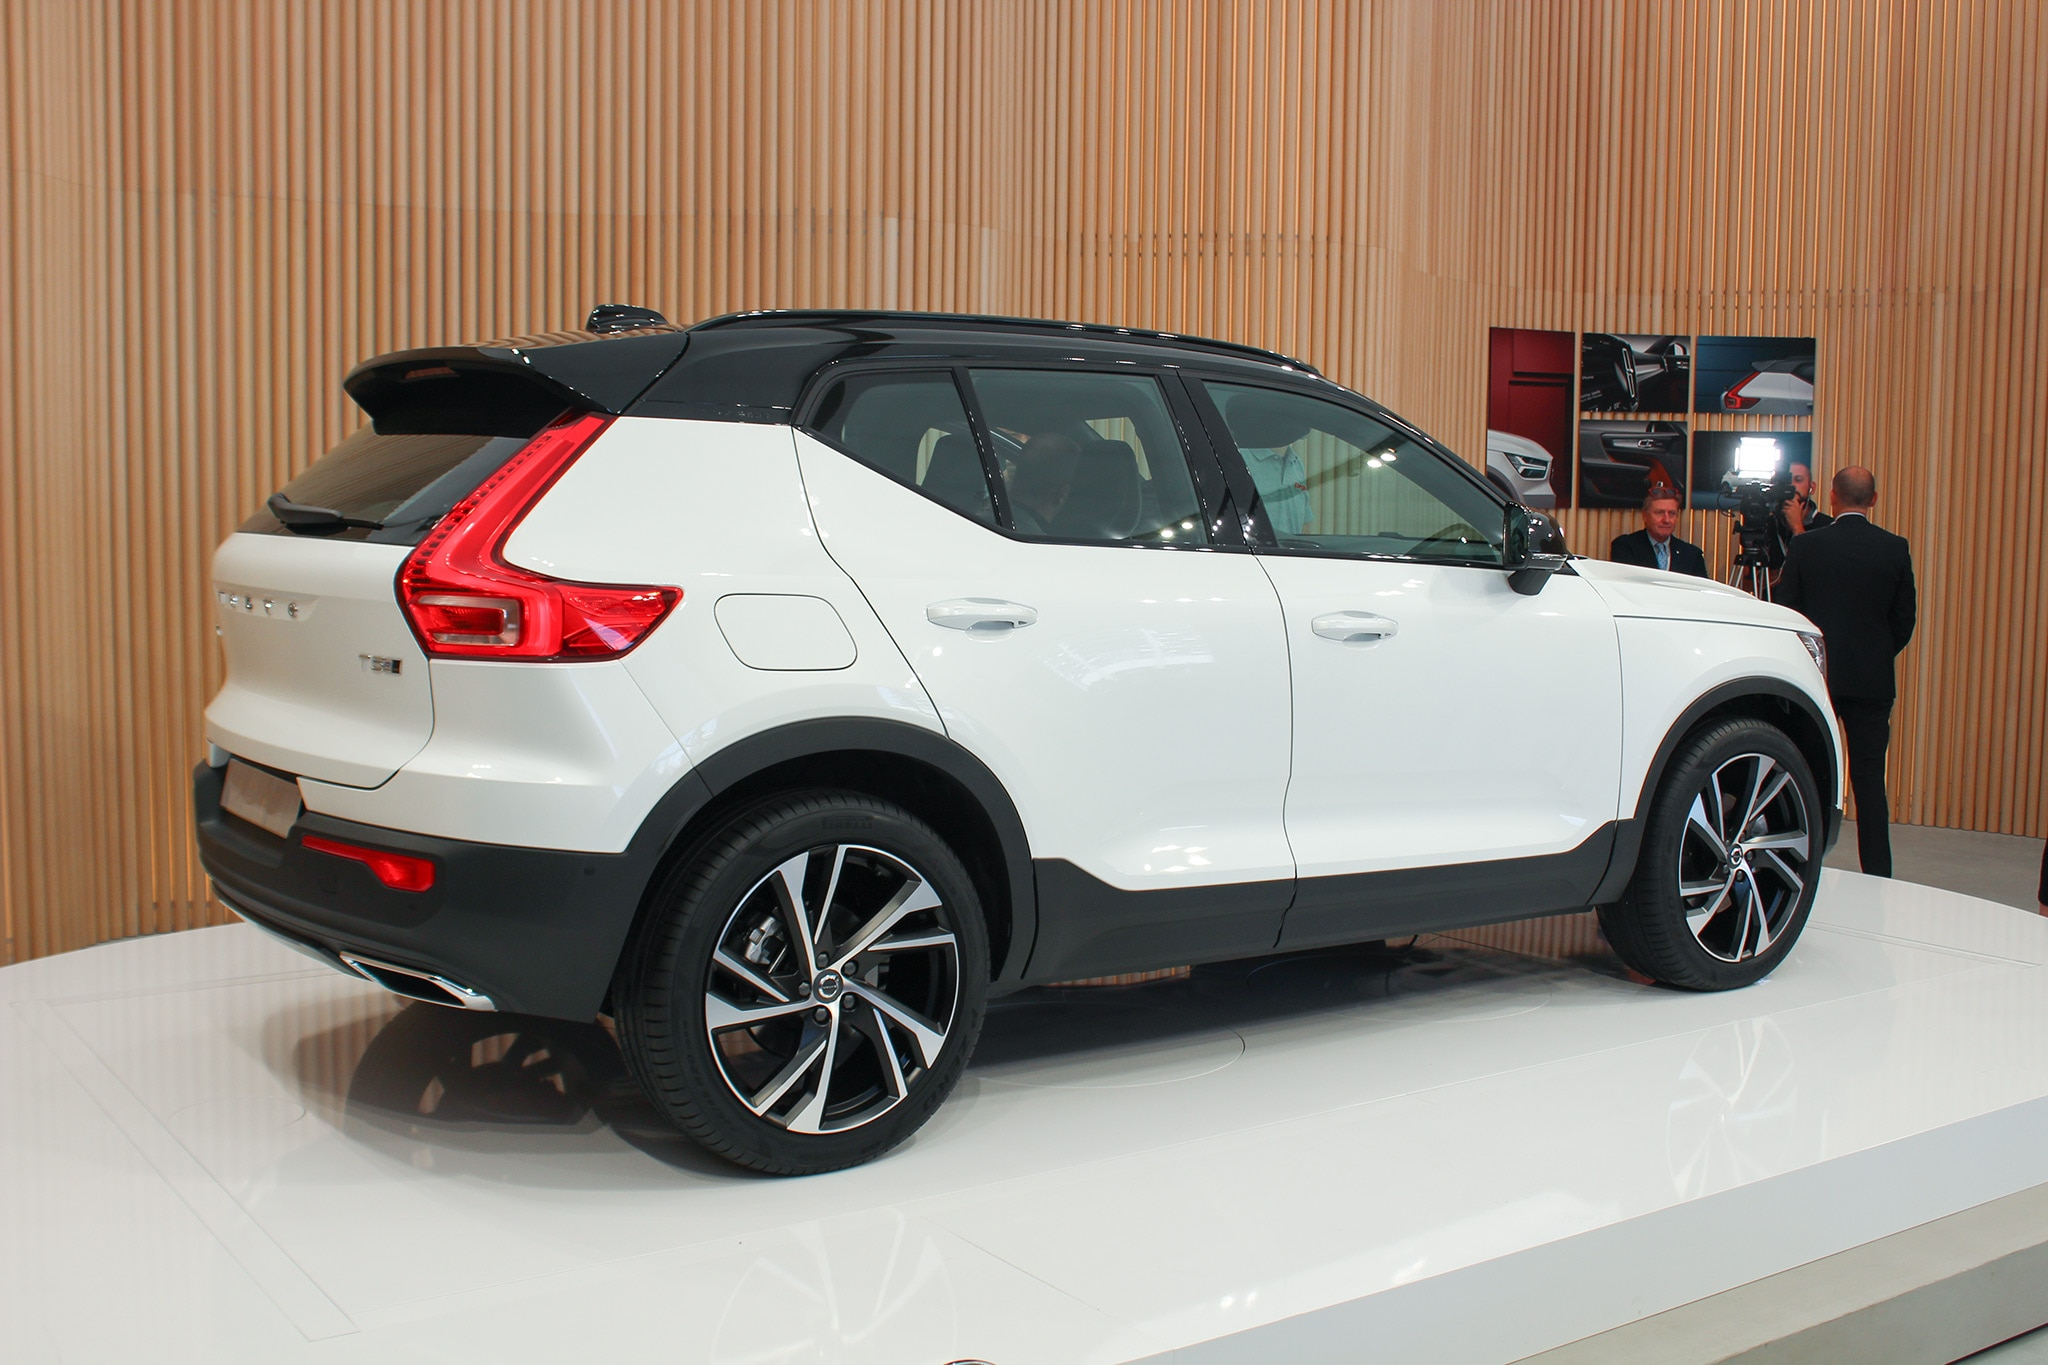 2019 Volvo Xc40 Crashes Milan S Fashion Week Automobile Magazine